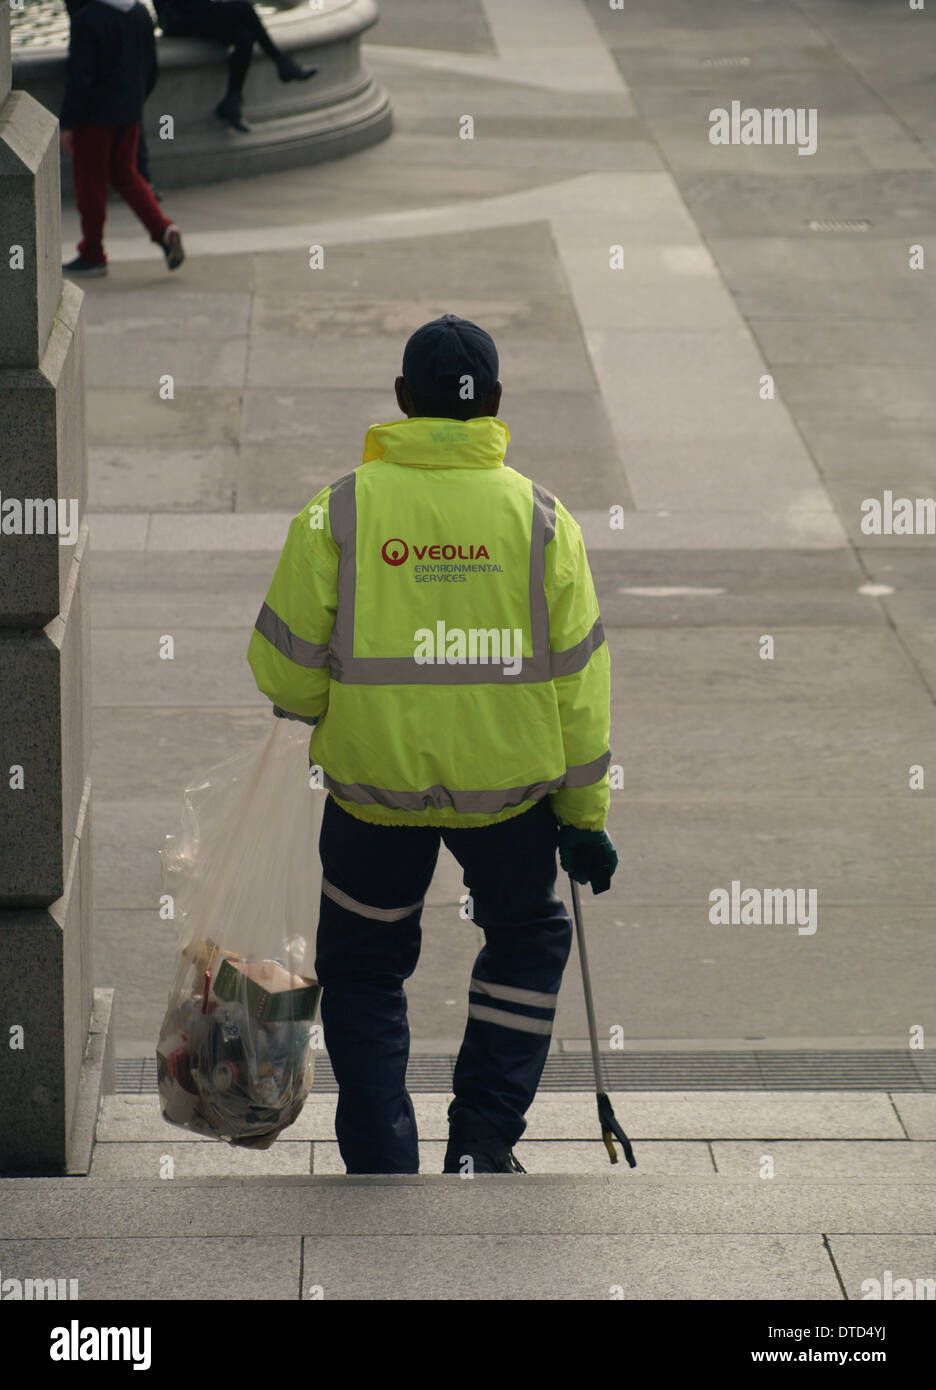 A council worker collecting litter in a bag with a pick up claw in Trafalgar Square, London - Stock Image